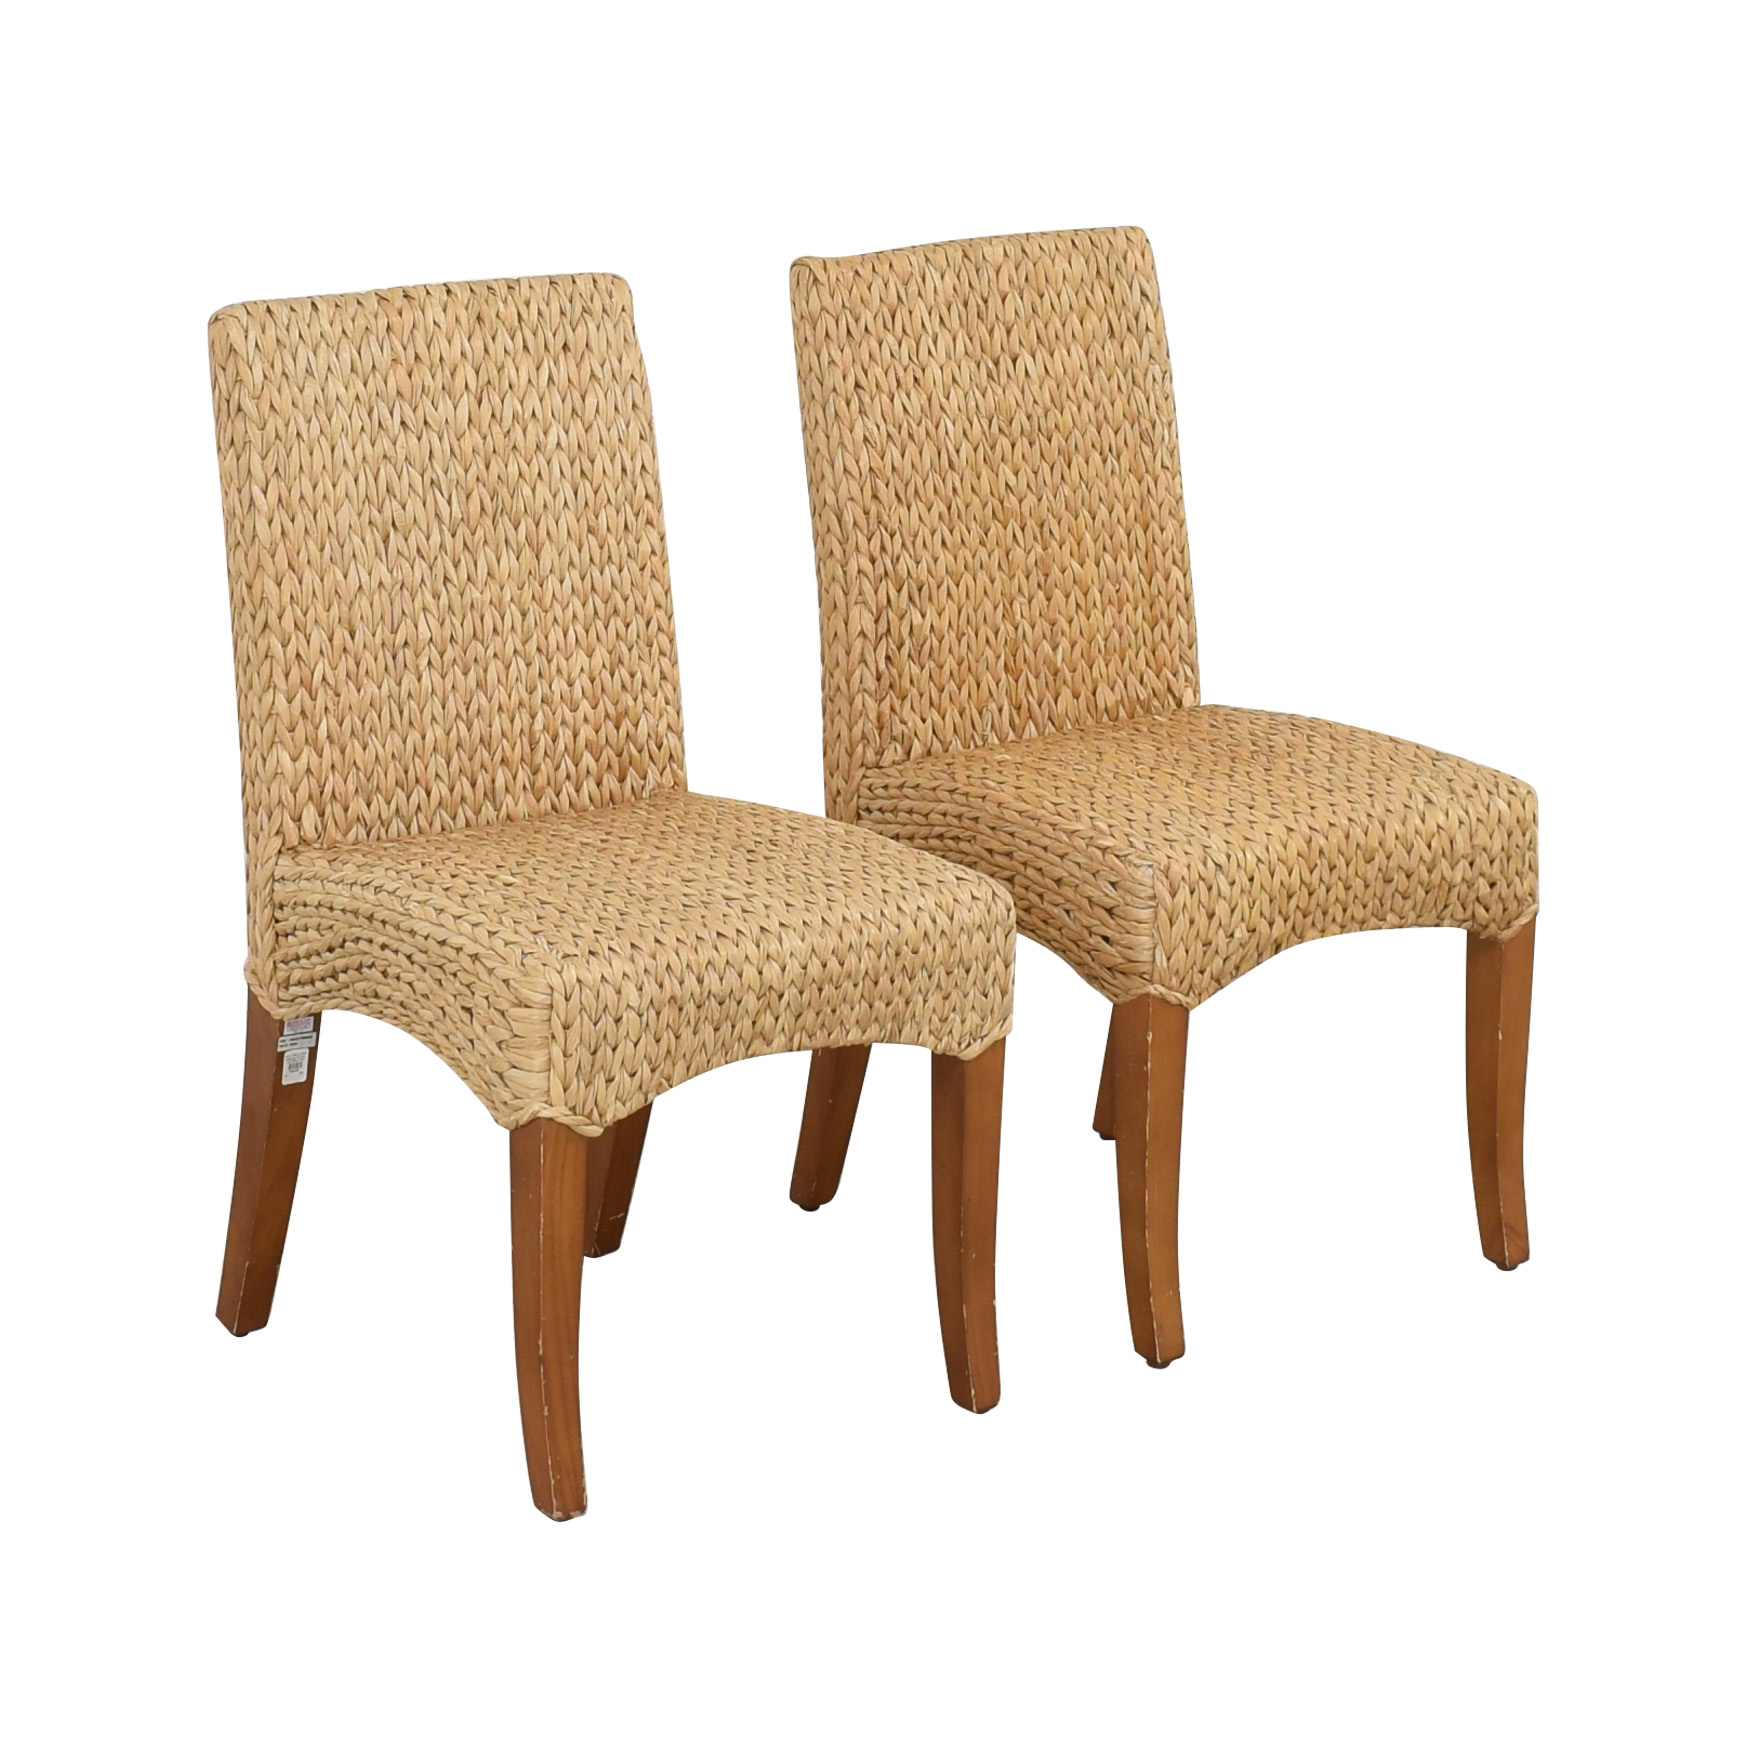 Pottery Barn Seagrass Dining Side Chairs sale